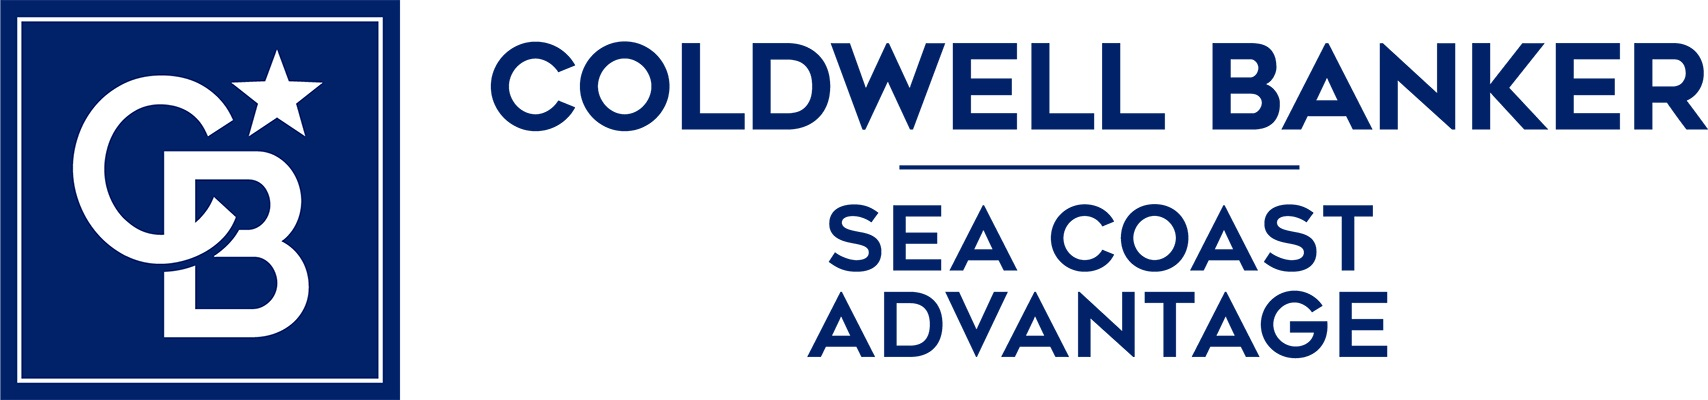 Gwen Hydzik - Coldwell Banker Sea Coast Advantage Realty Logo